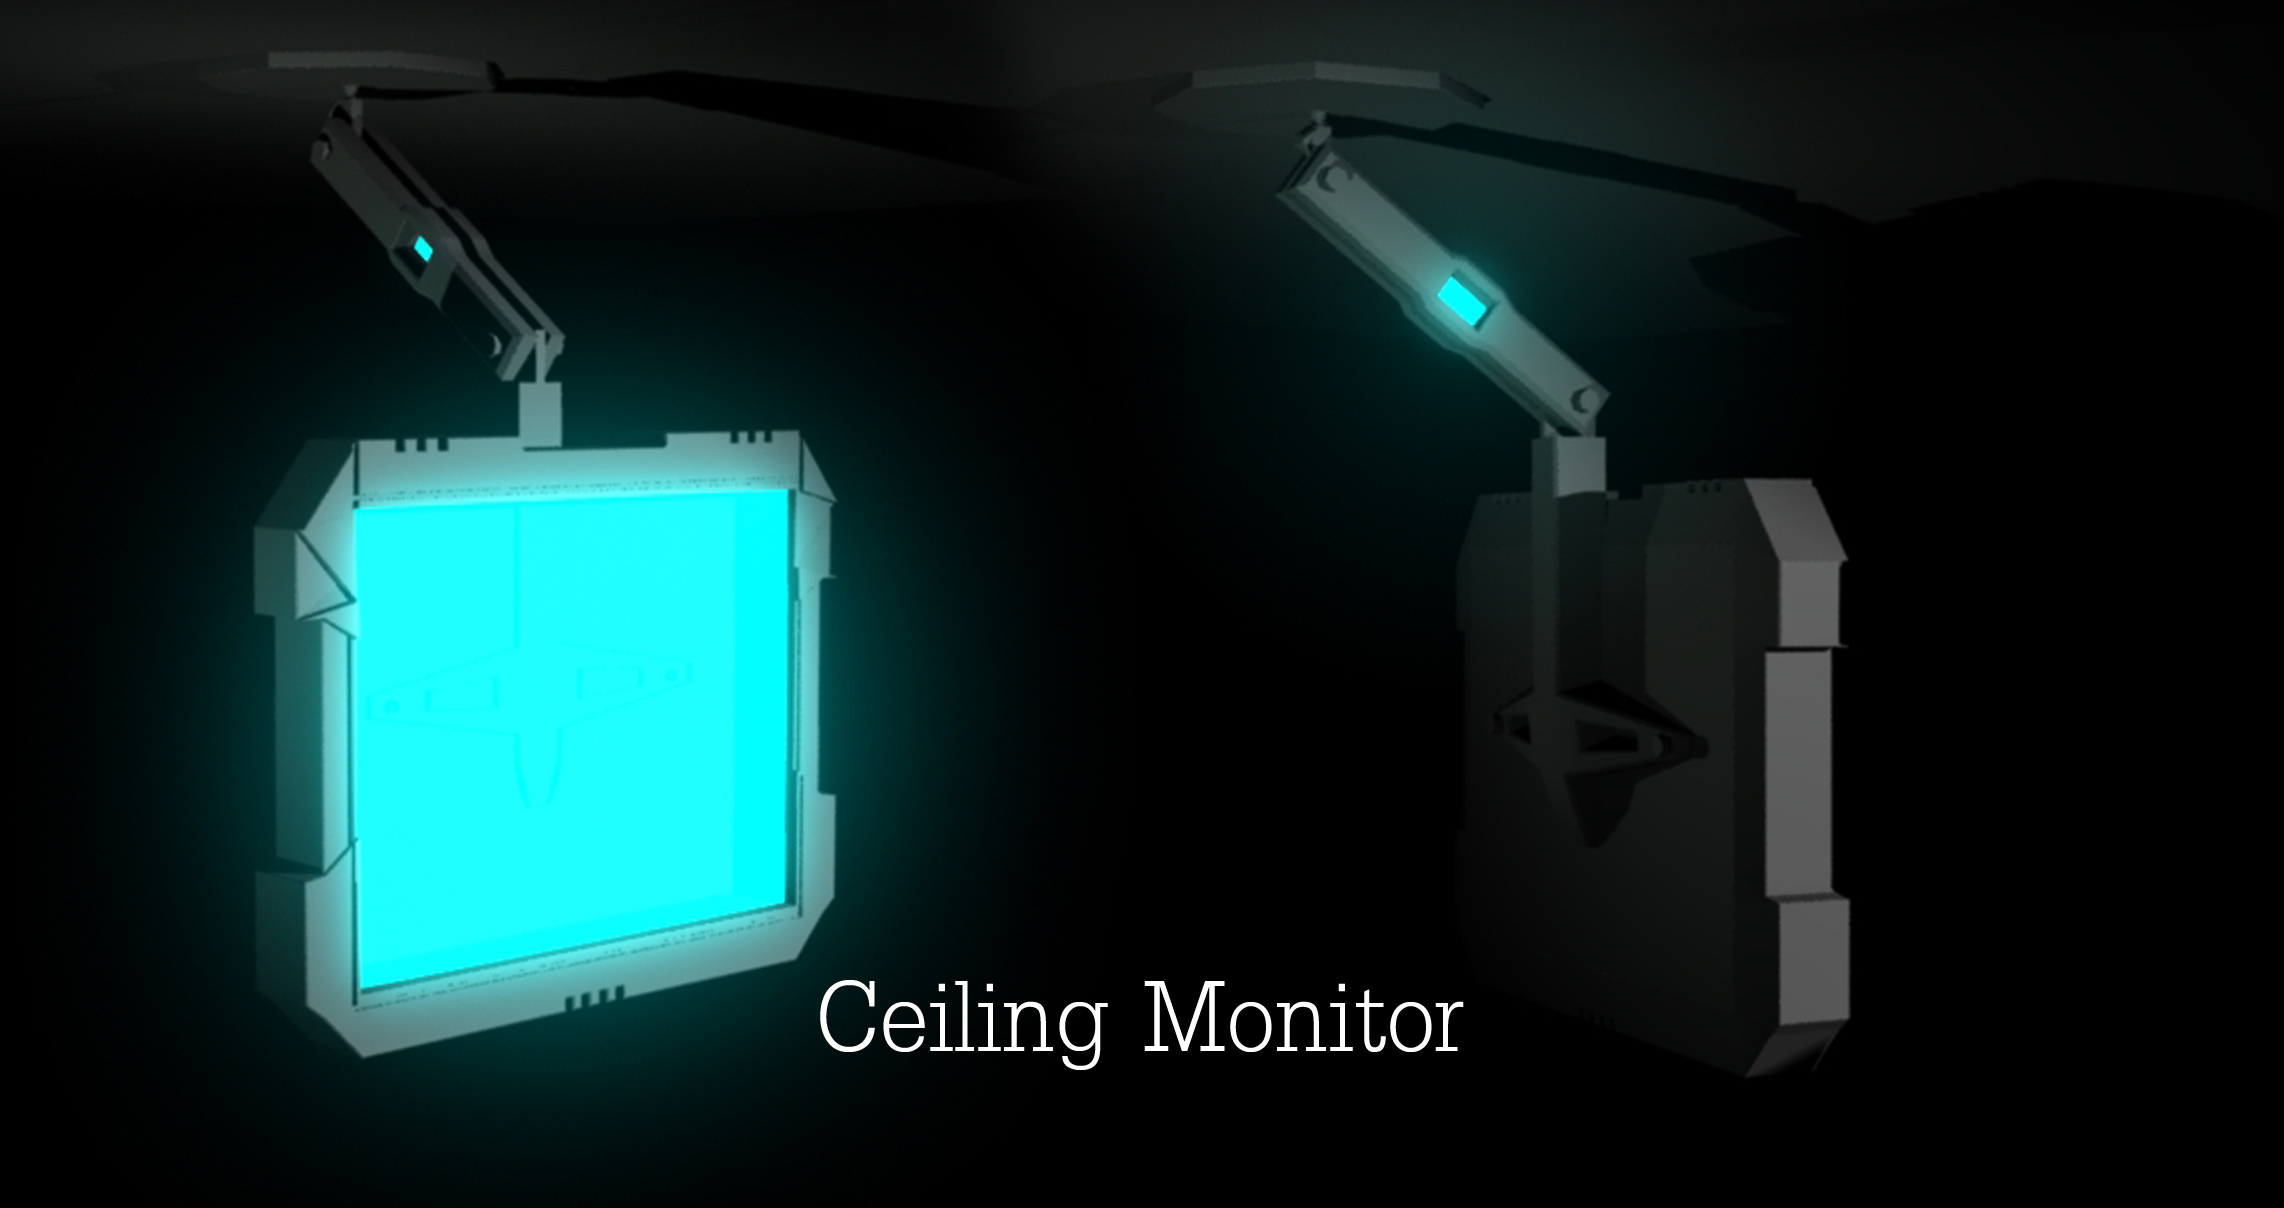 Ceiling Monitor